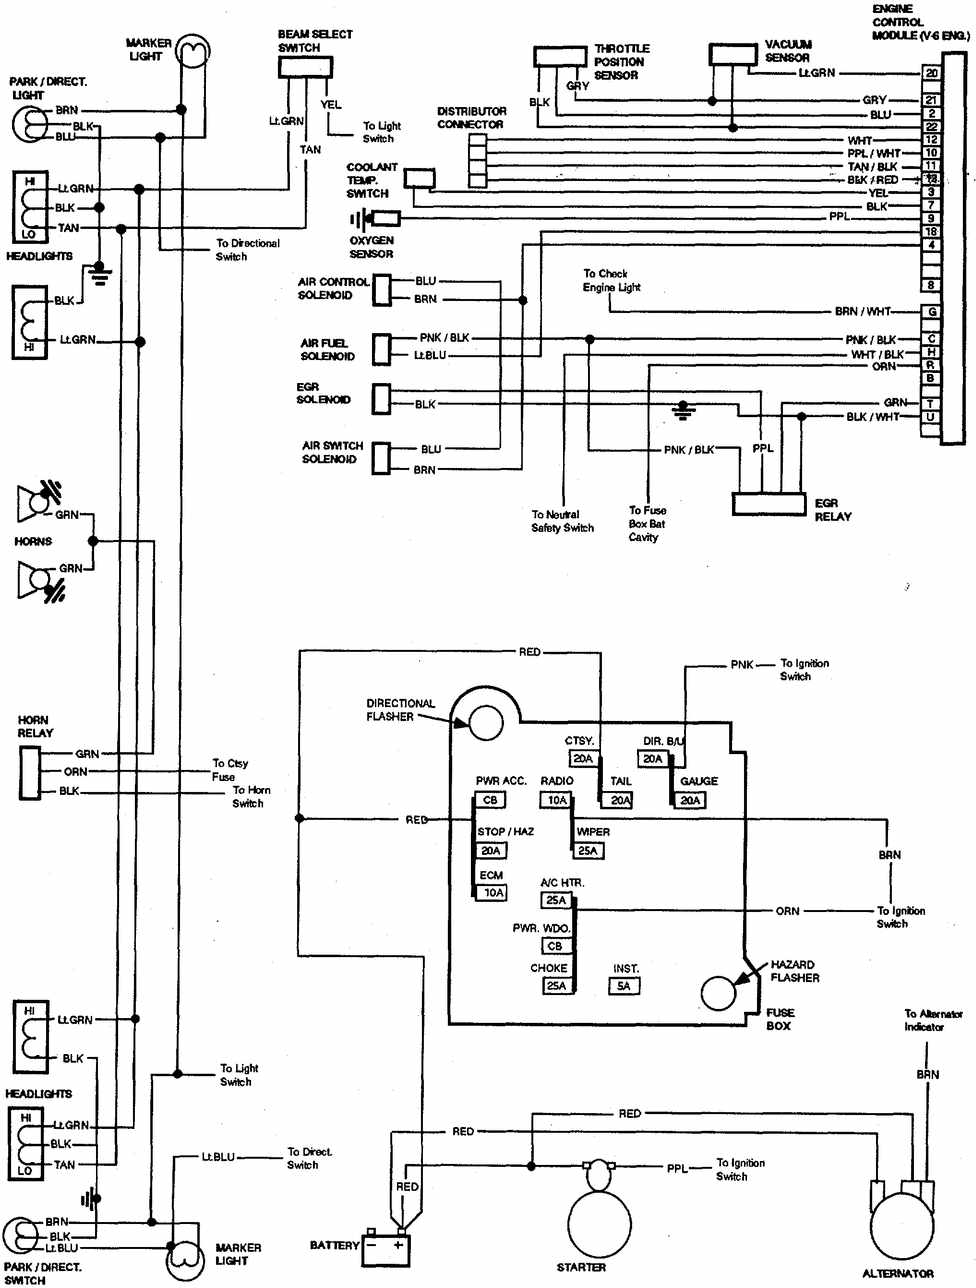 1986 International Truck Wiring Diagram Auto Electrical 47 Trucks Fantastic Vulcan Freeloader 260 Chevy